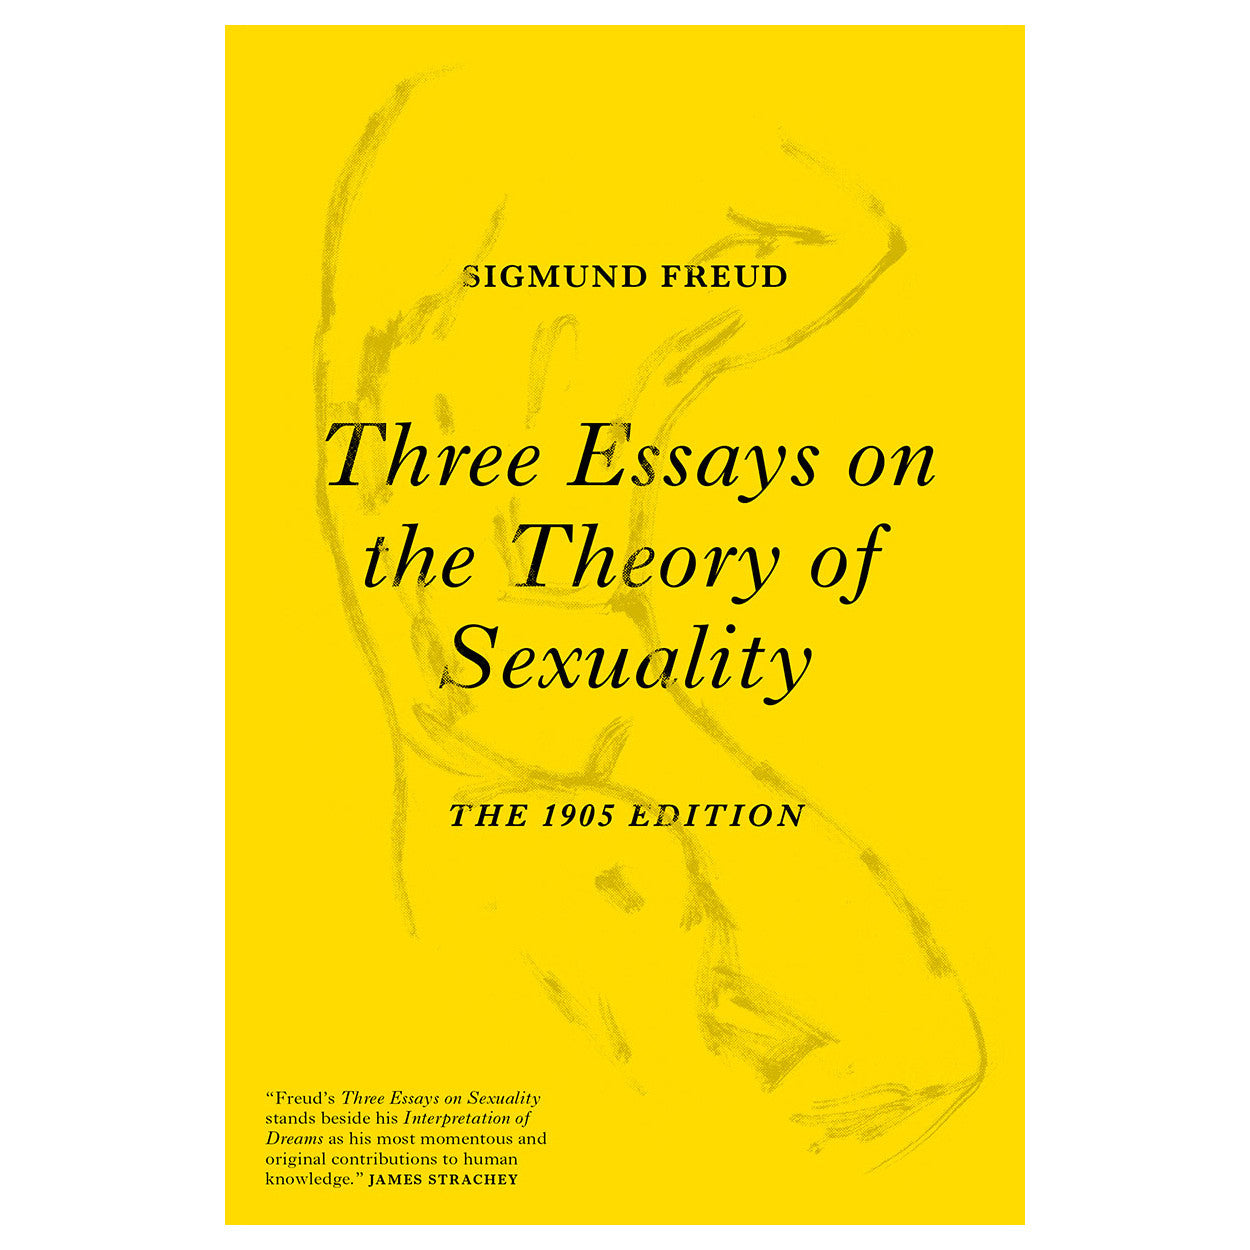 three essays on the theory of sexuality the 1905 edition three essays on the theory of sexuality the 1905 edition sigmund freud